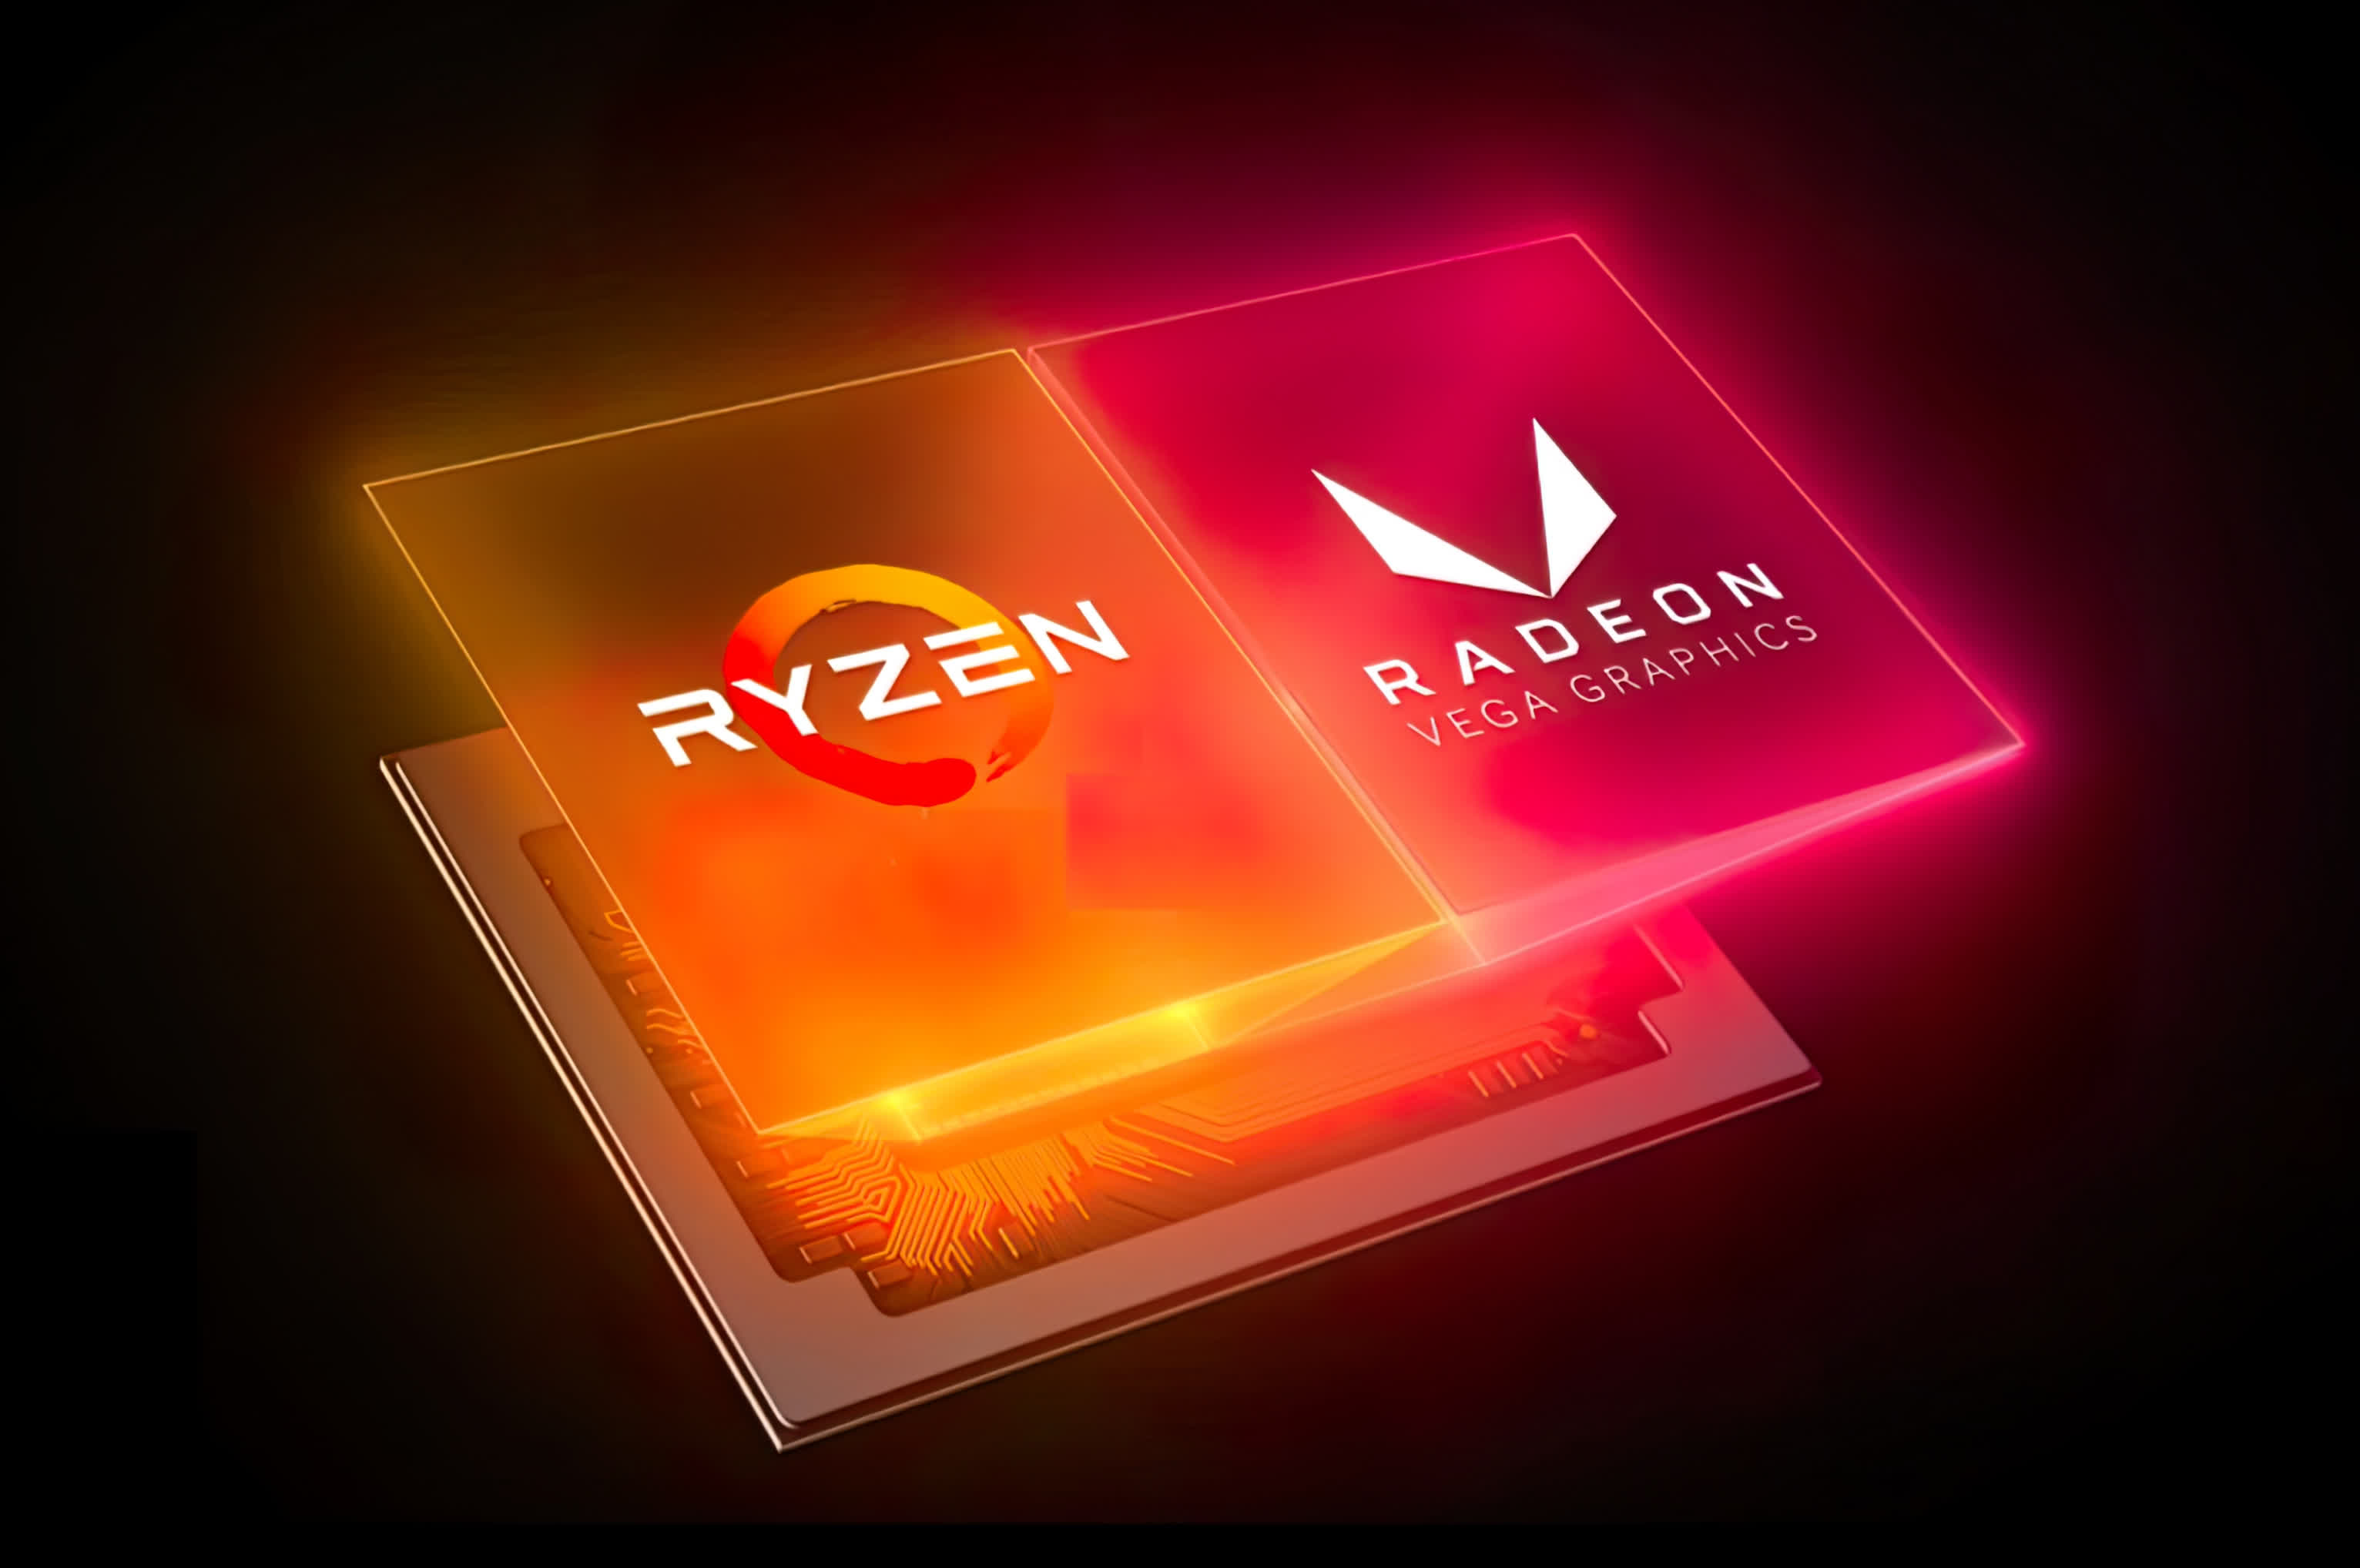 Upcoming AMD CPU with RDNA1 graphics may be coming, spotted in Linux code